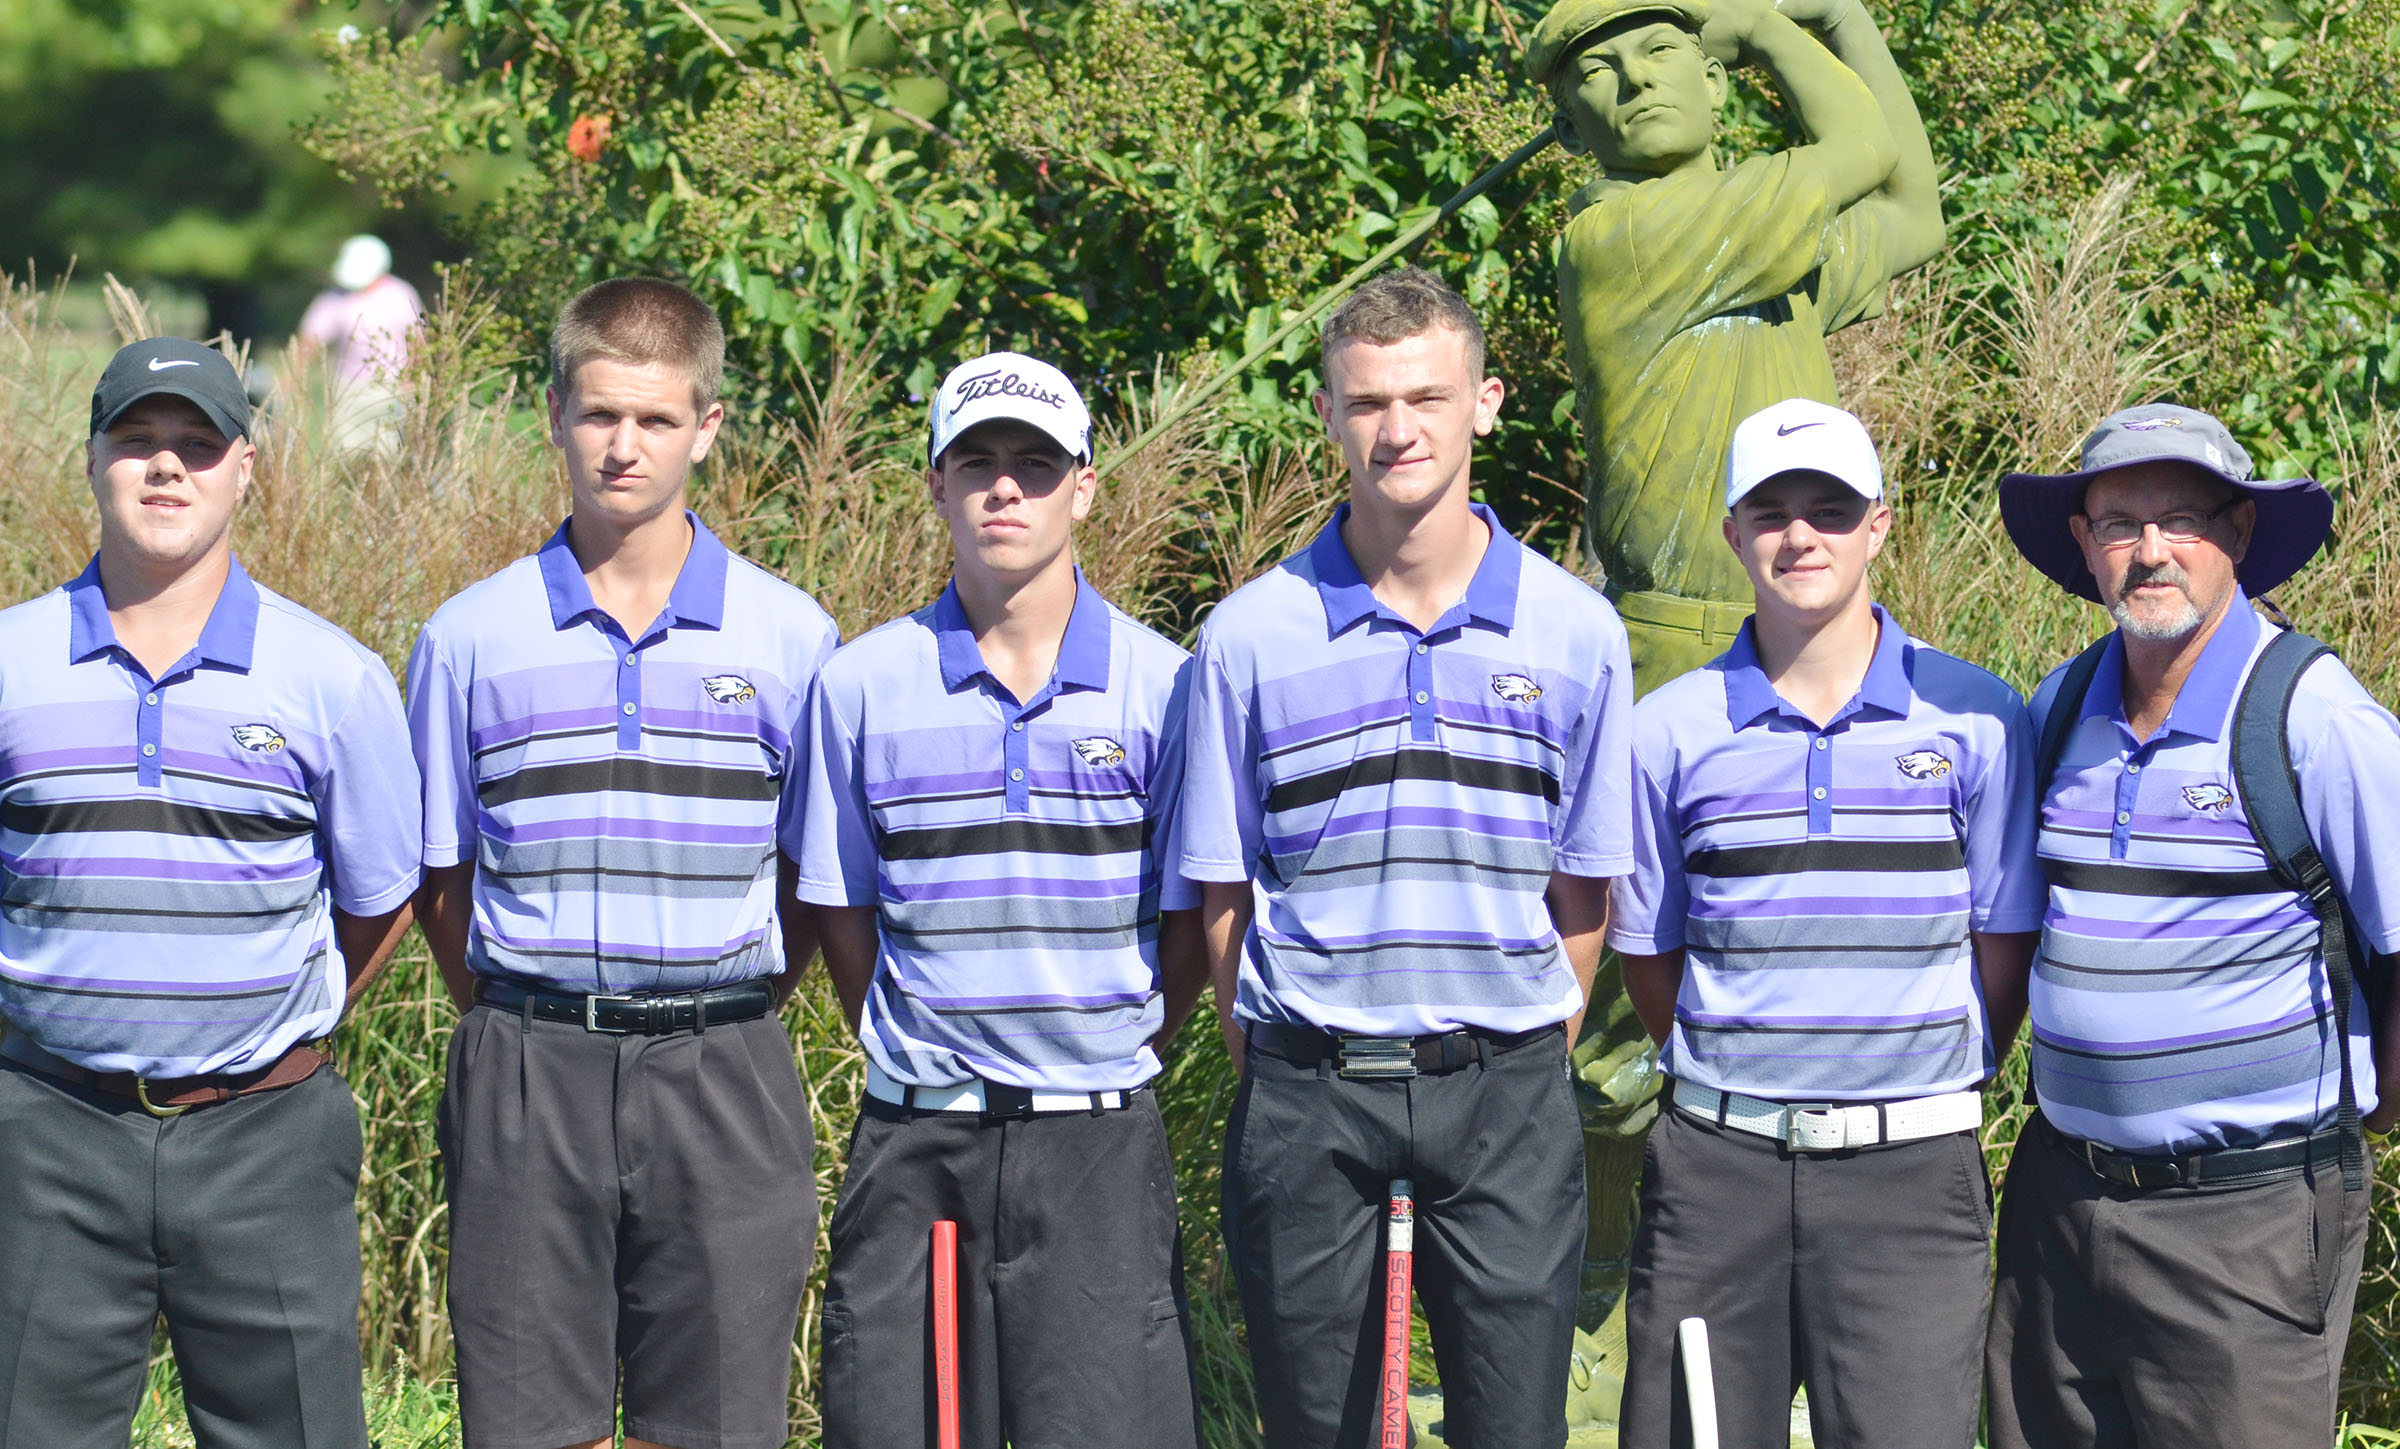 CHS boys' golf team competed in the KHSAA state tournament on Friday, Oct. 7, for its first appearance since 1977. From left are senior Noah Wagers, sophomores Myles Murrell and Layton Hord, juniors Connor Wilson and Alex Doss and coach Jim Ward.